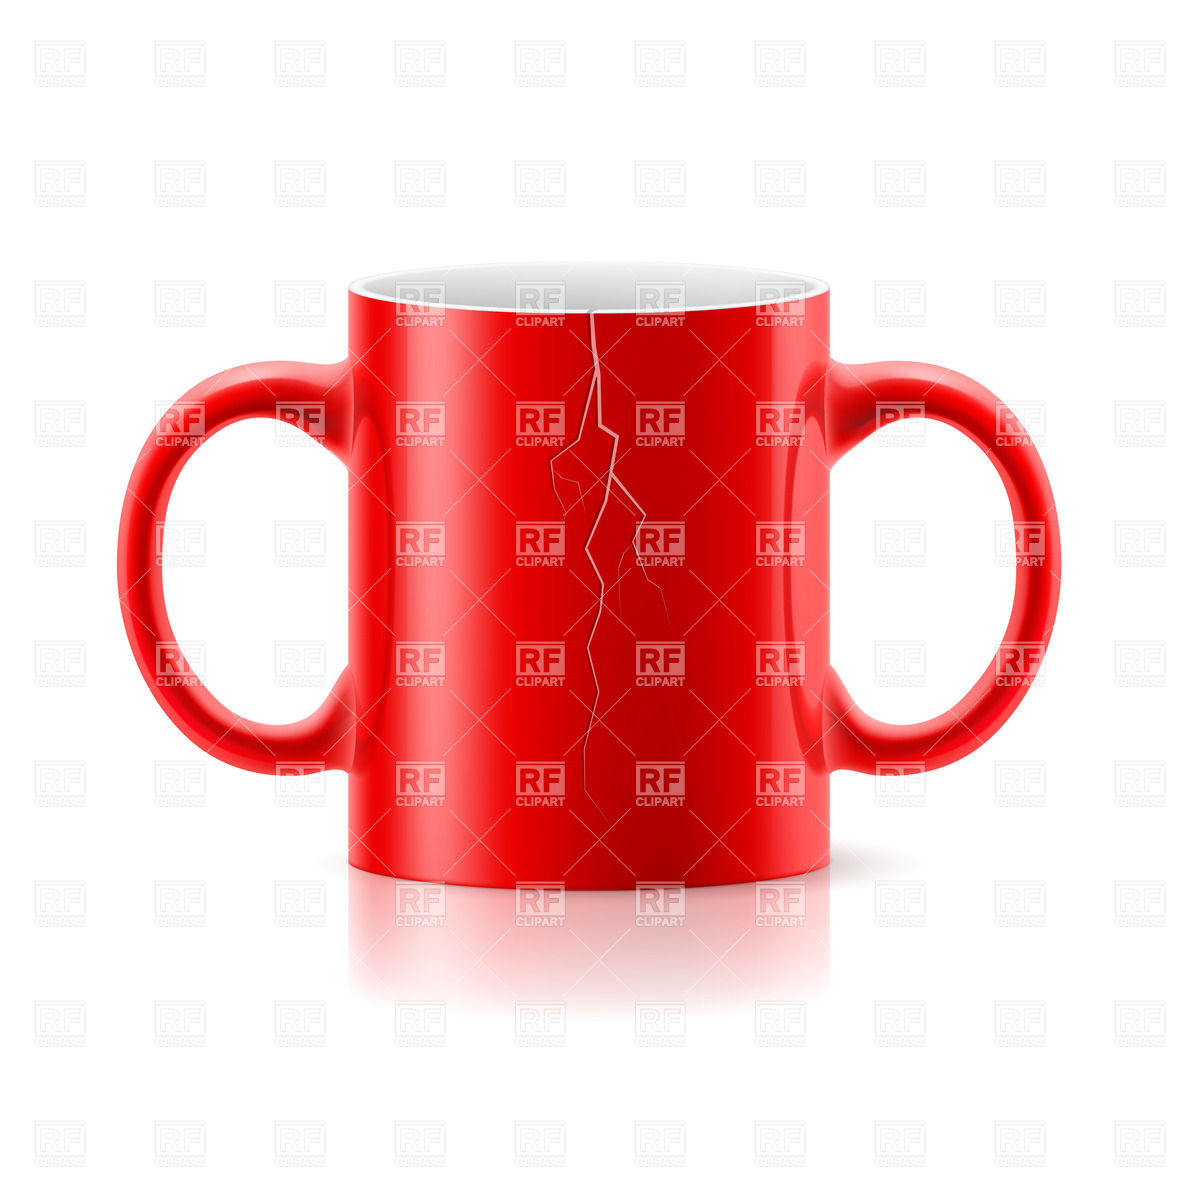 Red mug with two handles on each side on white background Vector.